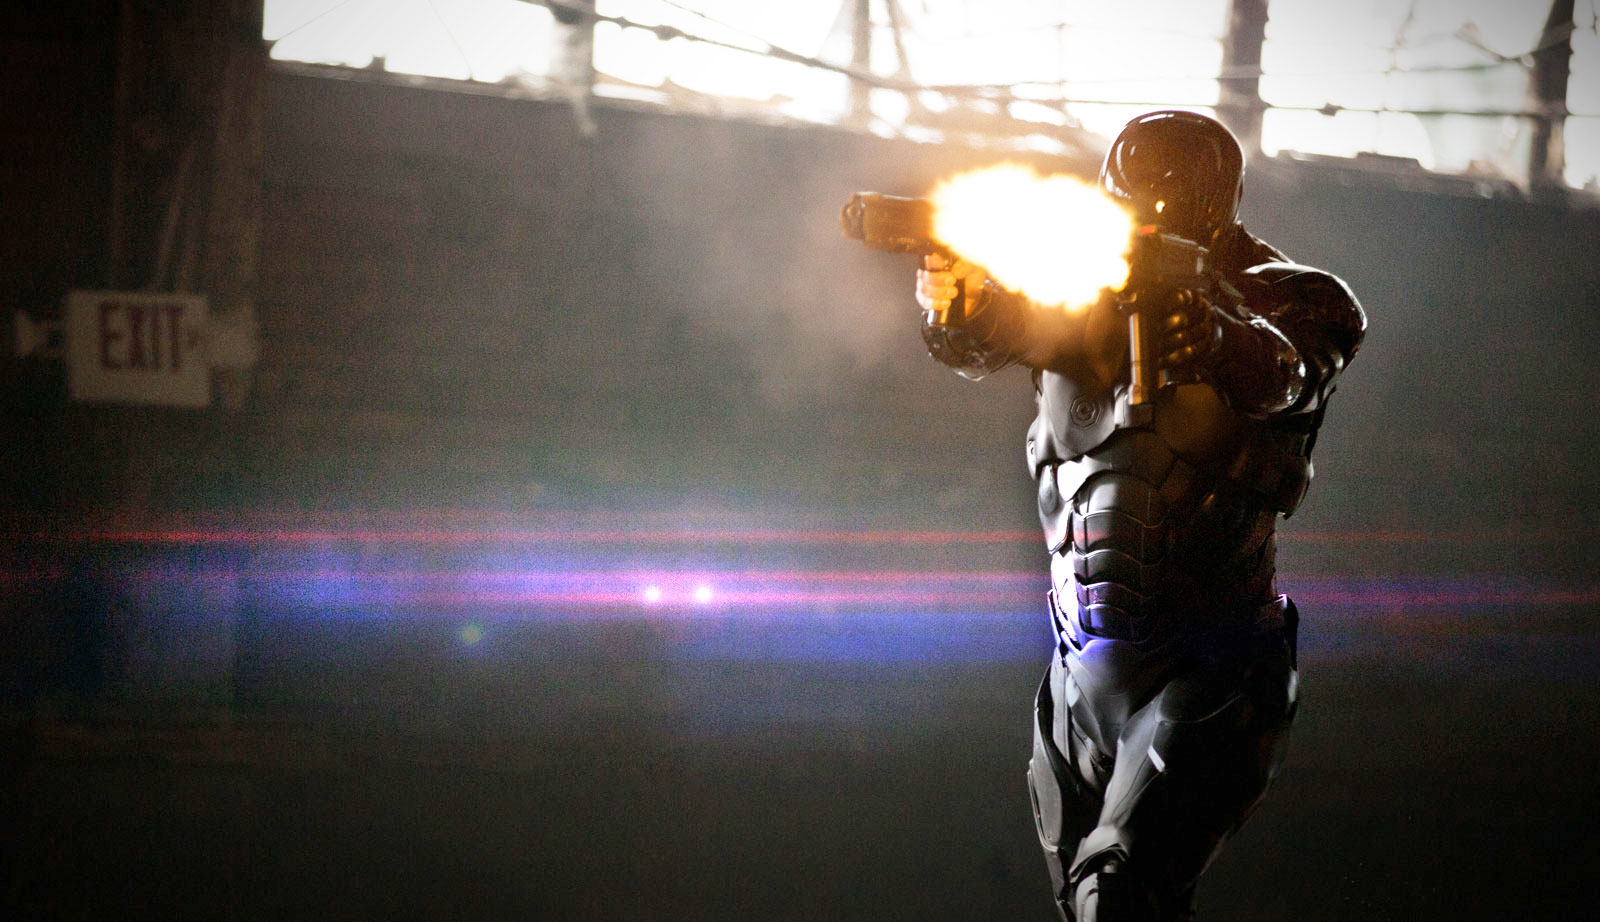 Robocop shooting Wallpaper HD 1600x922